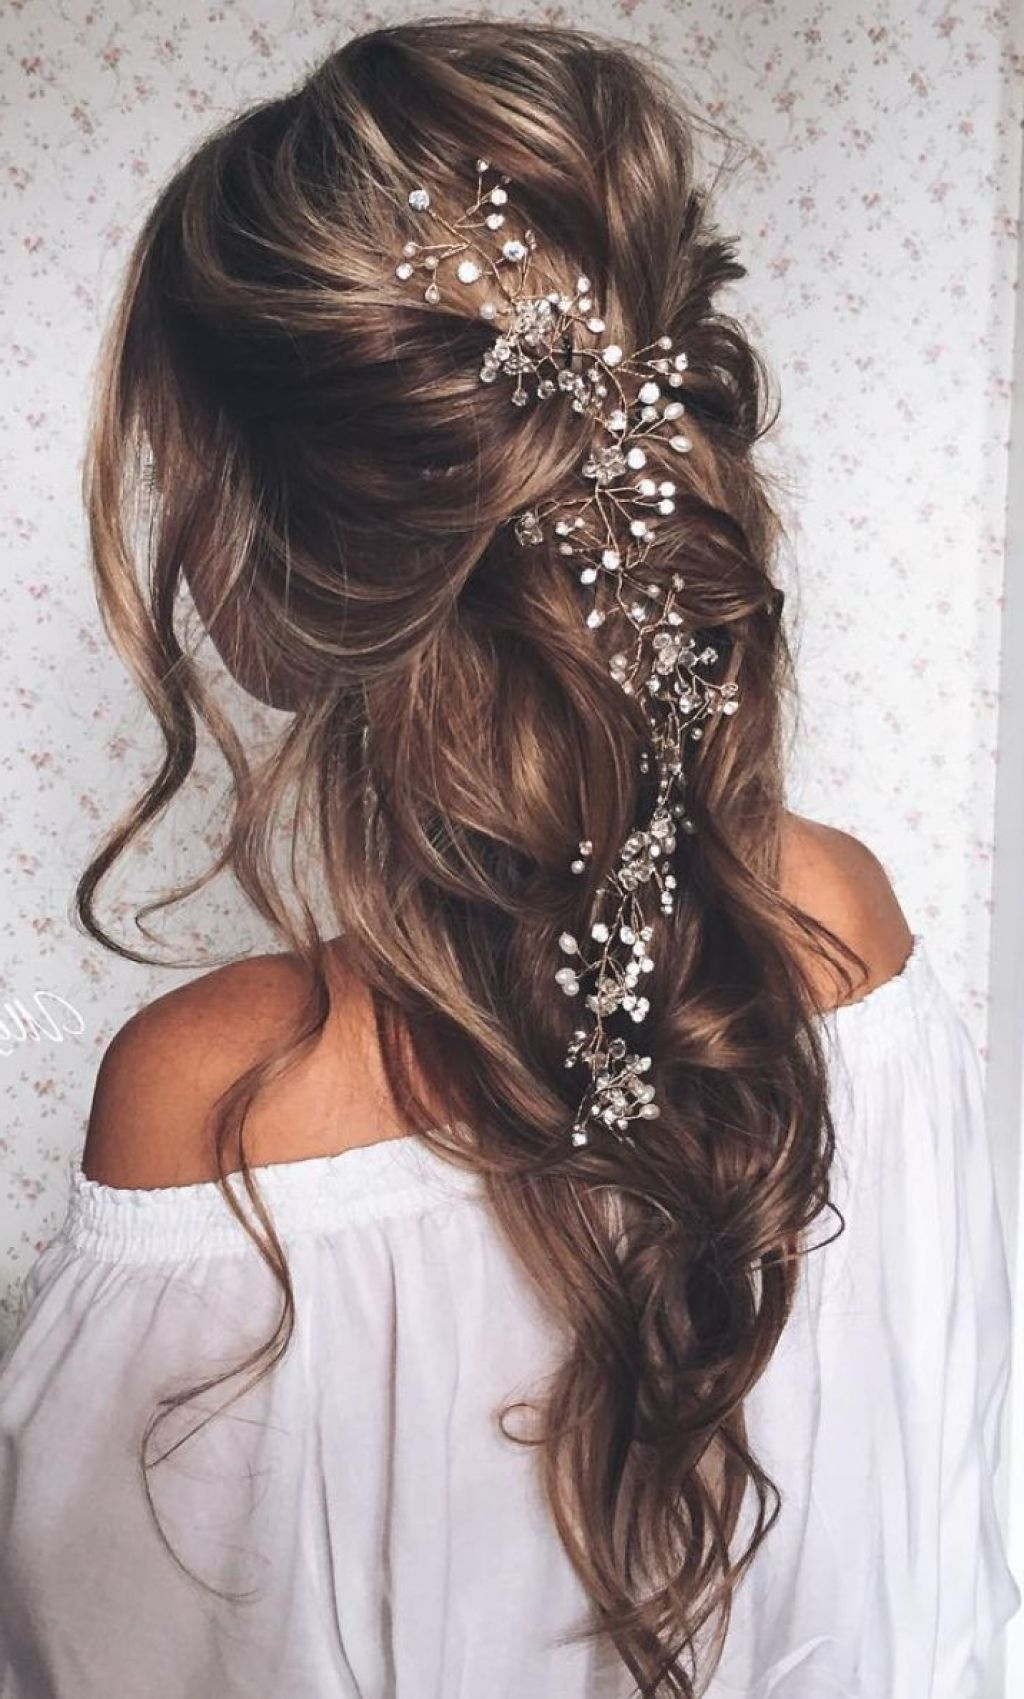 Sipaa Pertaining To Favorite Wedding Reception Hairstyles For Long Hair (View 13 of 15)